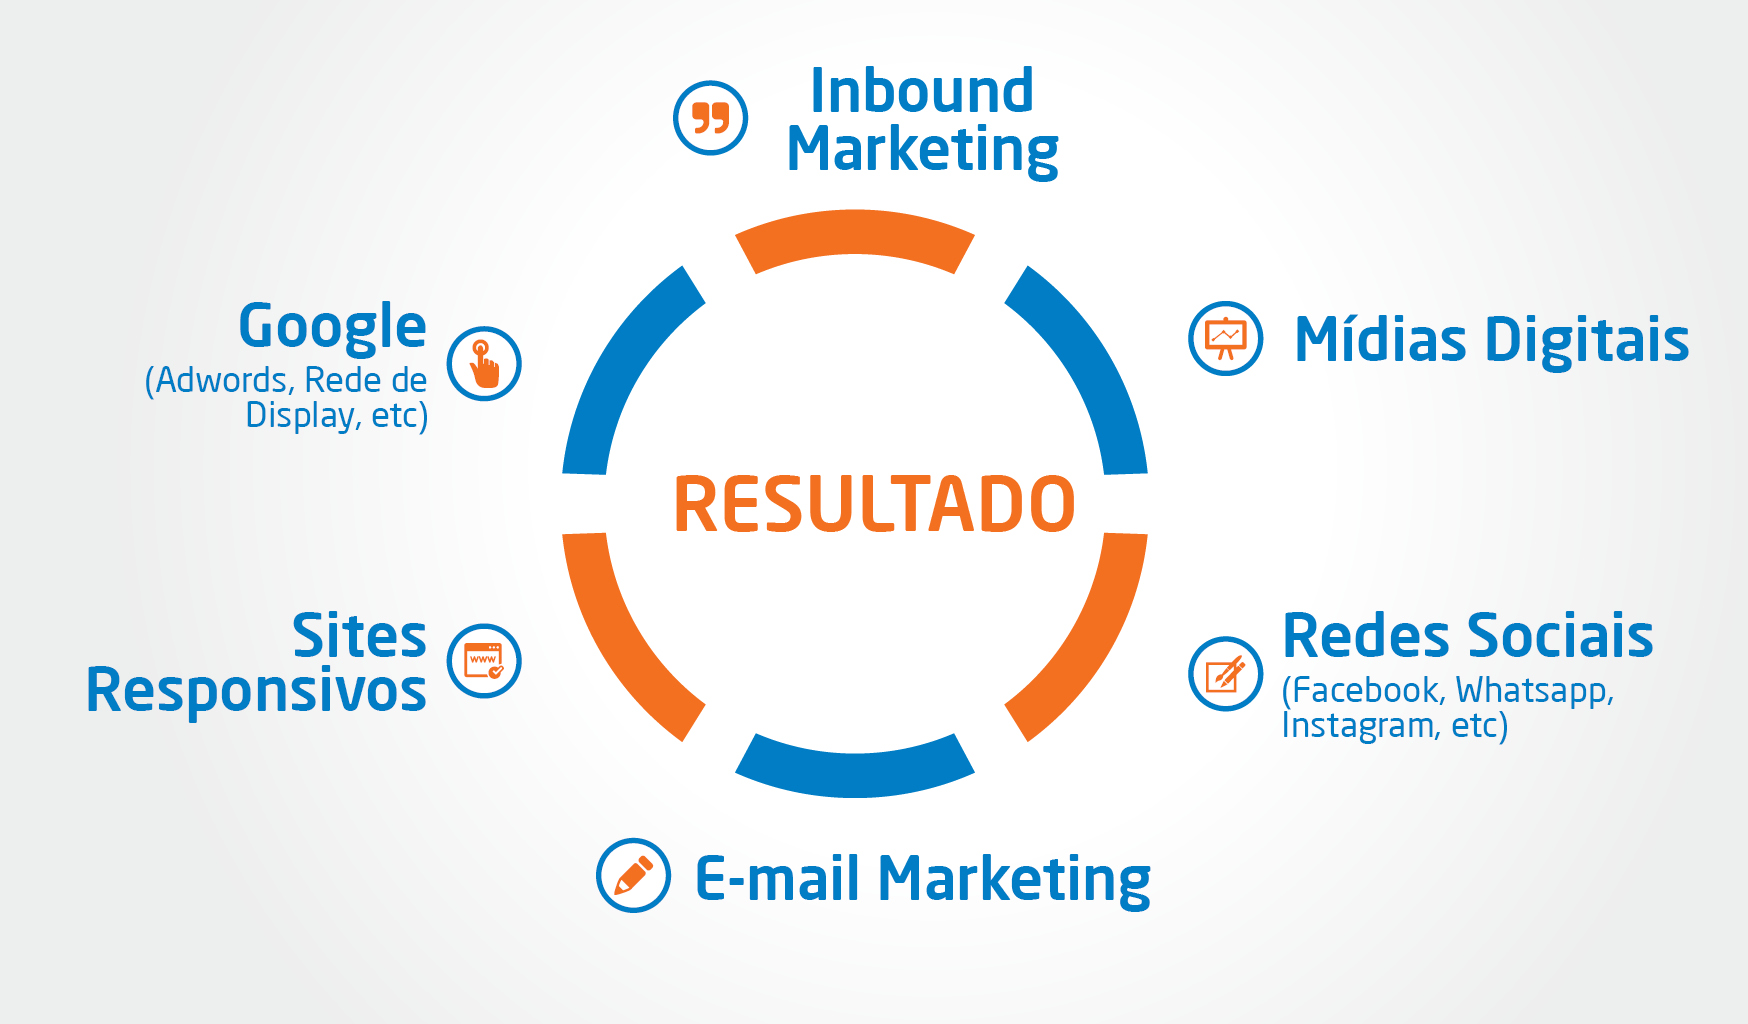 marketing digital ubá e regiao 748x210 - Como conseguimos mais de 2 mil oportunidades de negócio com marketing digital em Ubá e região